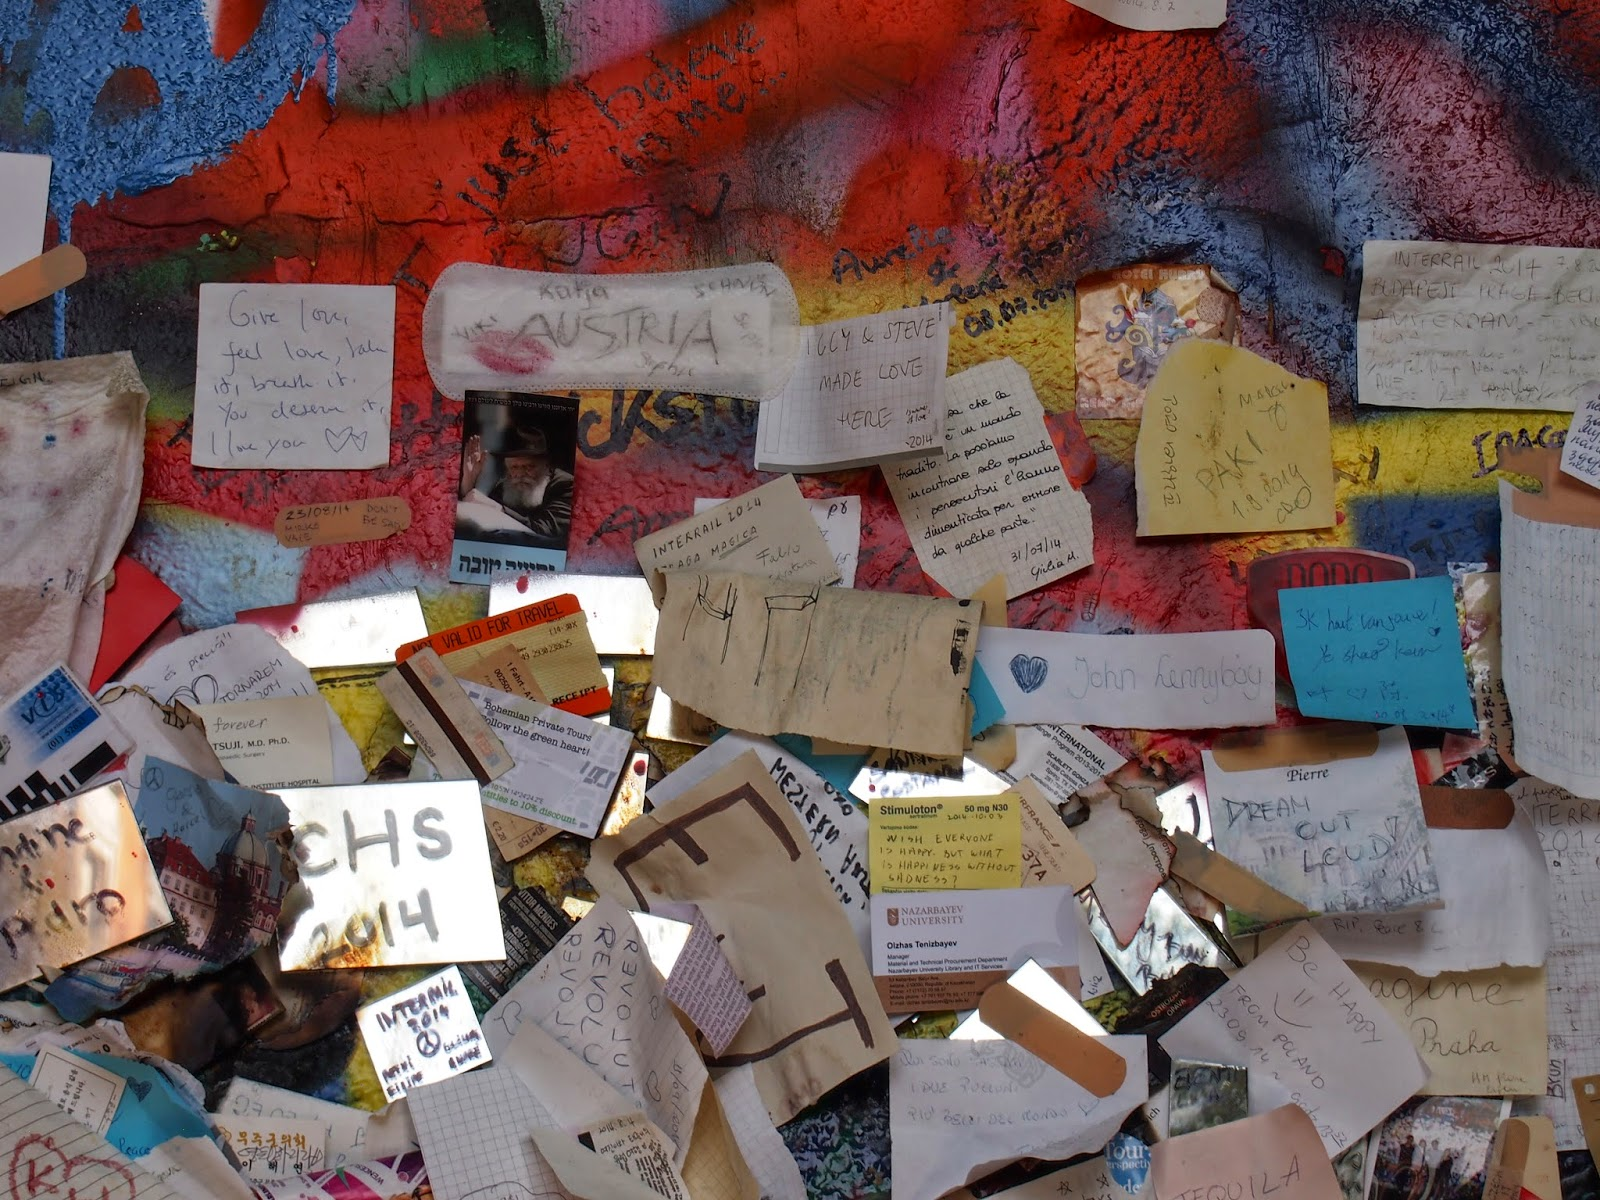 Notes written on paper at the Lennon Wall in Prague